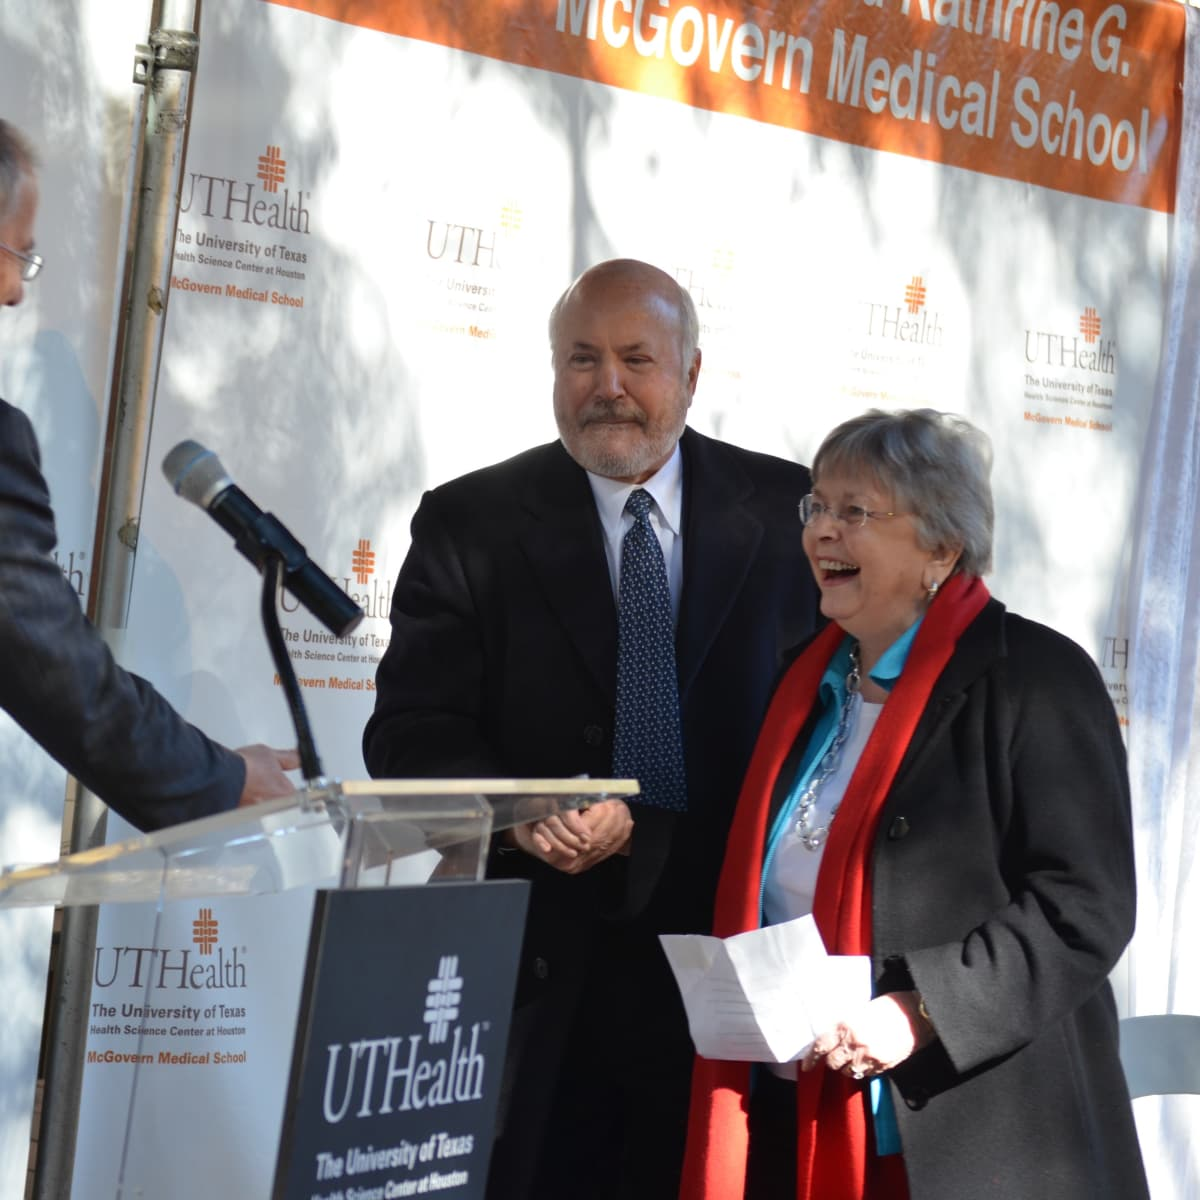 News, Shelby, McGovern Medical School unveiling, Nov. 2015,  Dr. Giuseppe Colasurdo, Bill Shrader, Kathrine McGovern